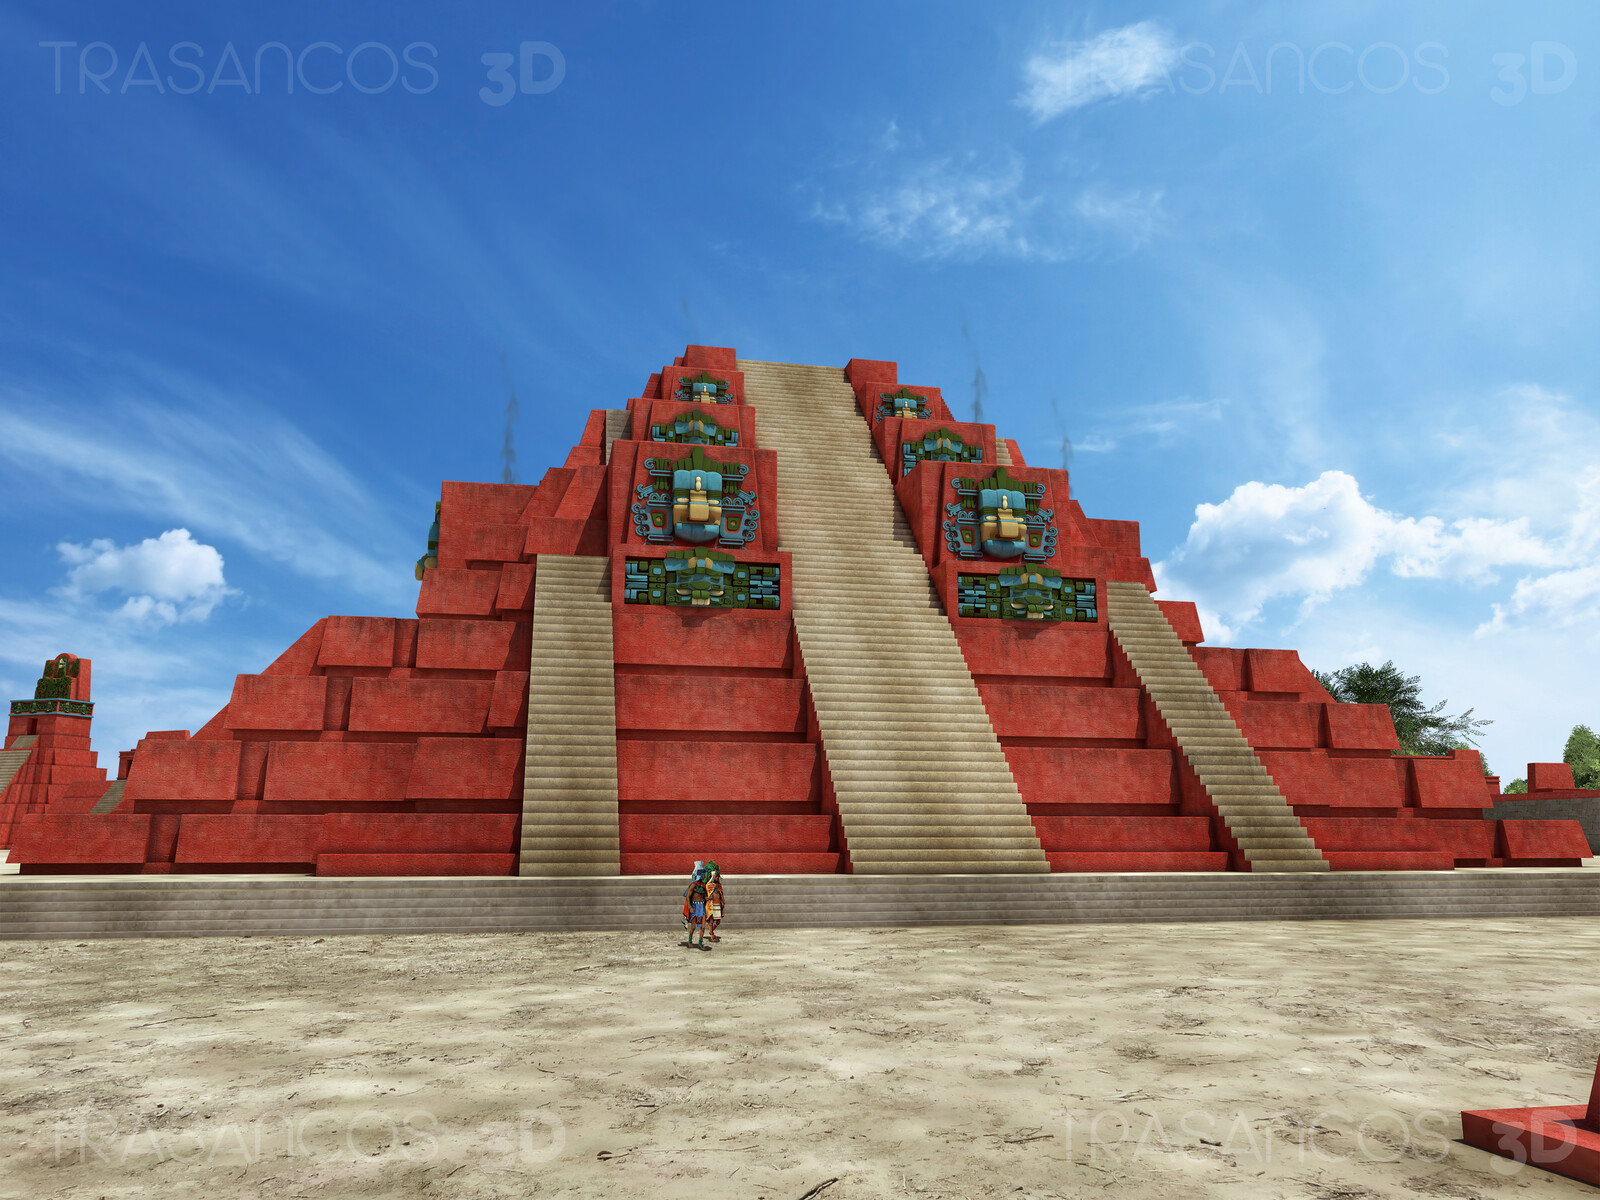 Pyramid of 'Mundo Perdido' (Lost World) in Tikal. Modeled in collaboration with: - Diego Blanco